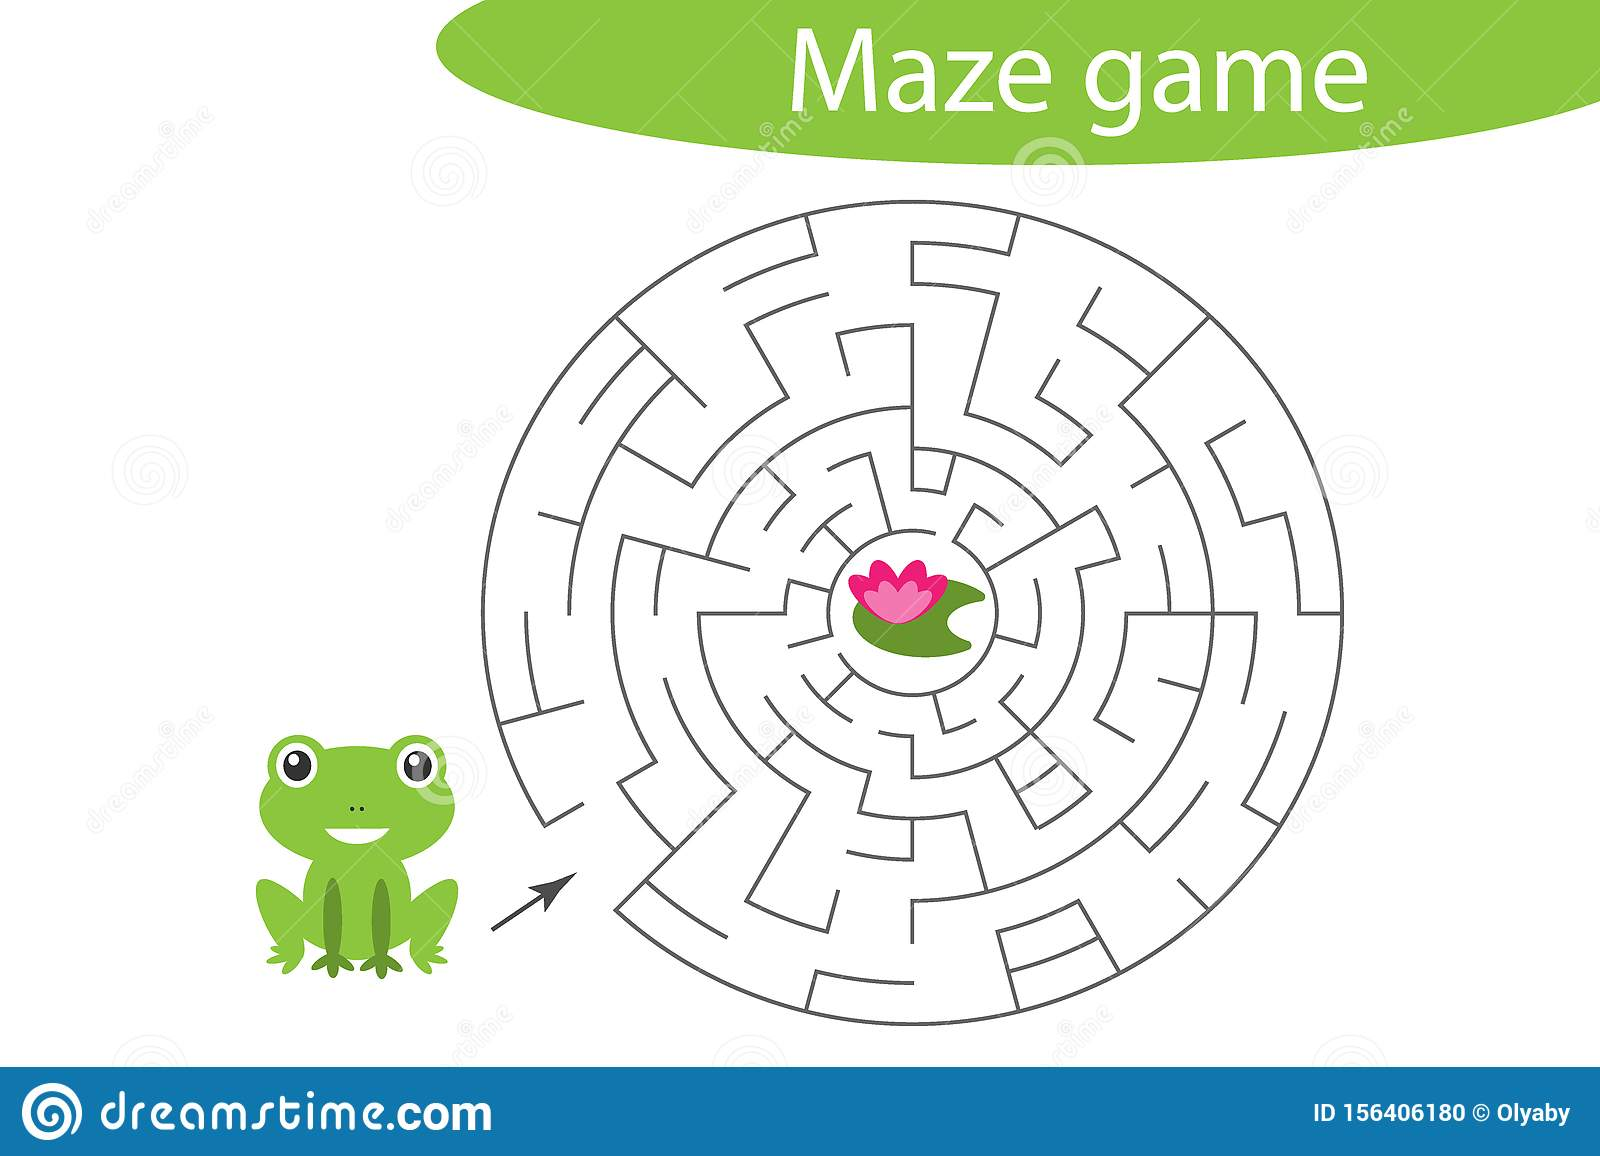 Labyrinth Game Help The Cute Frog To Find A Way Out Of